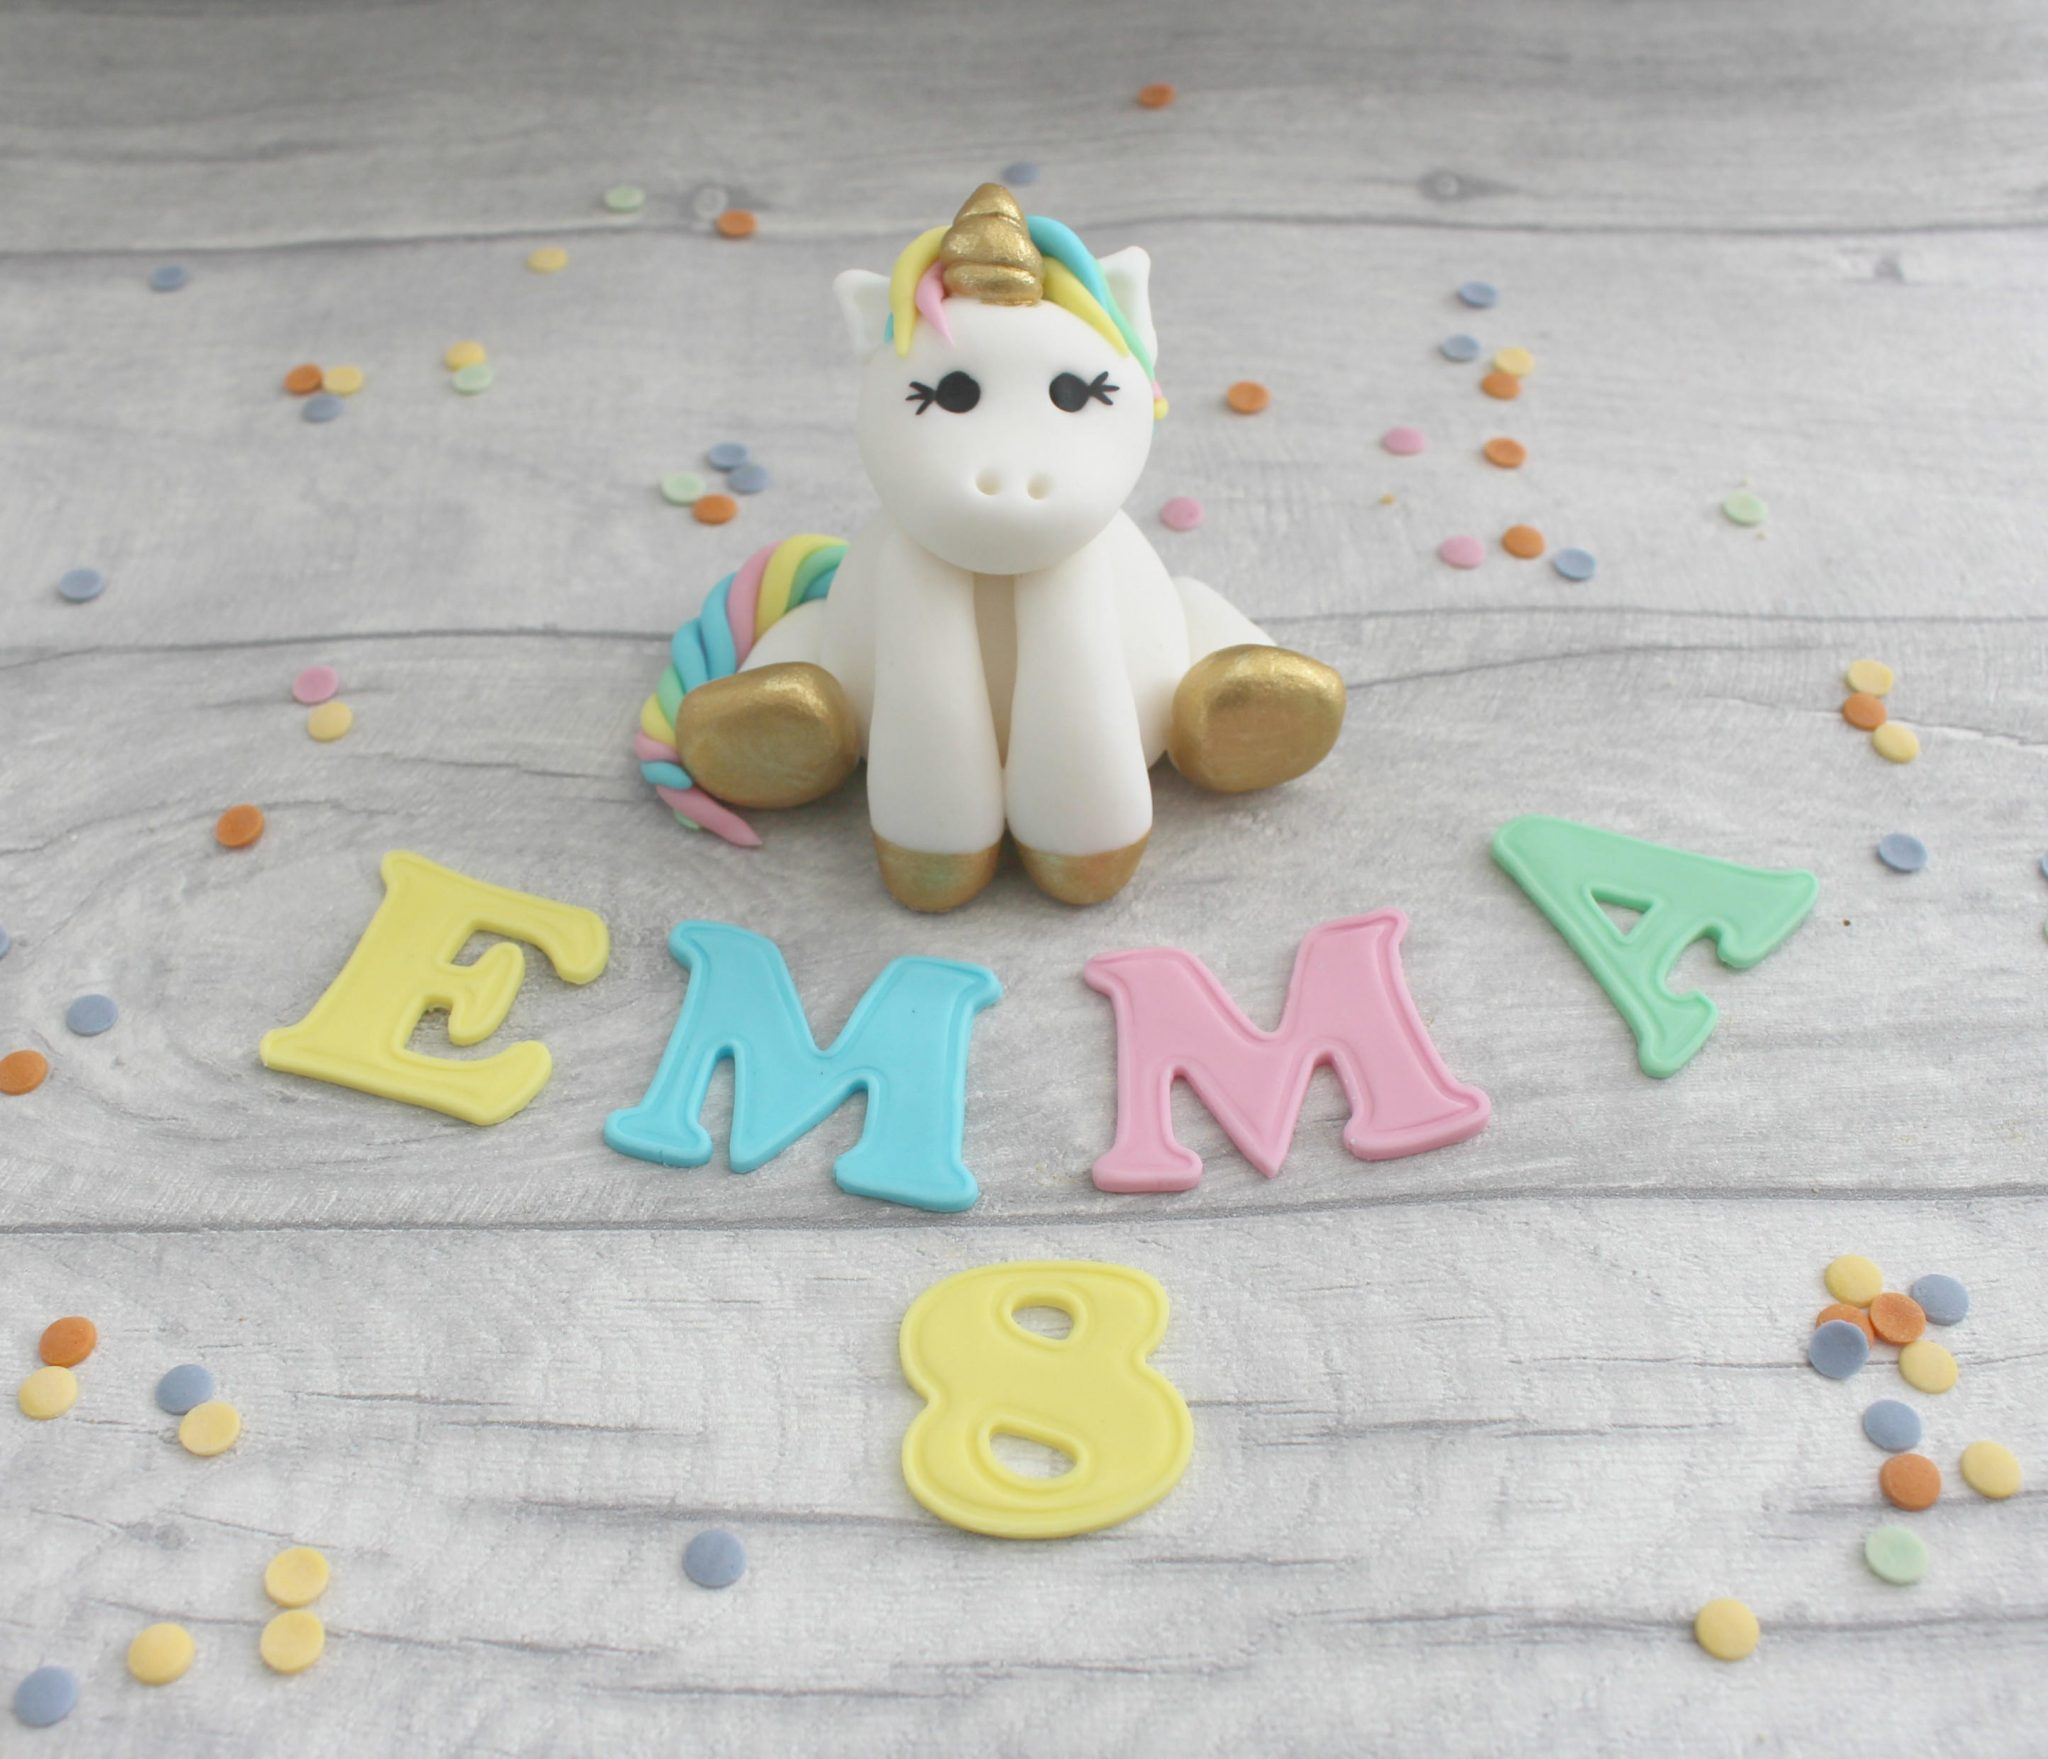 unicorn and letters cake toppers